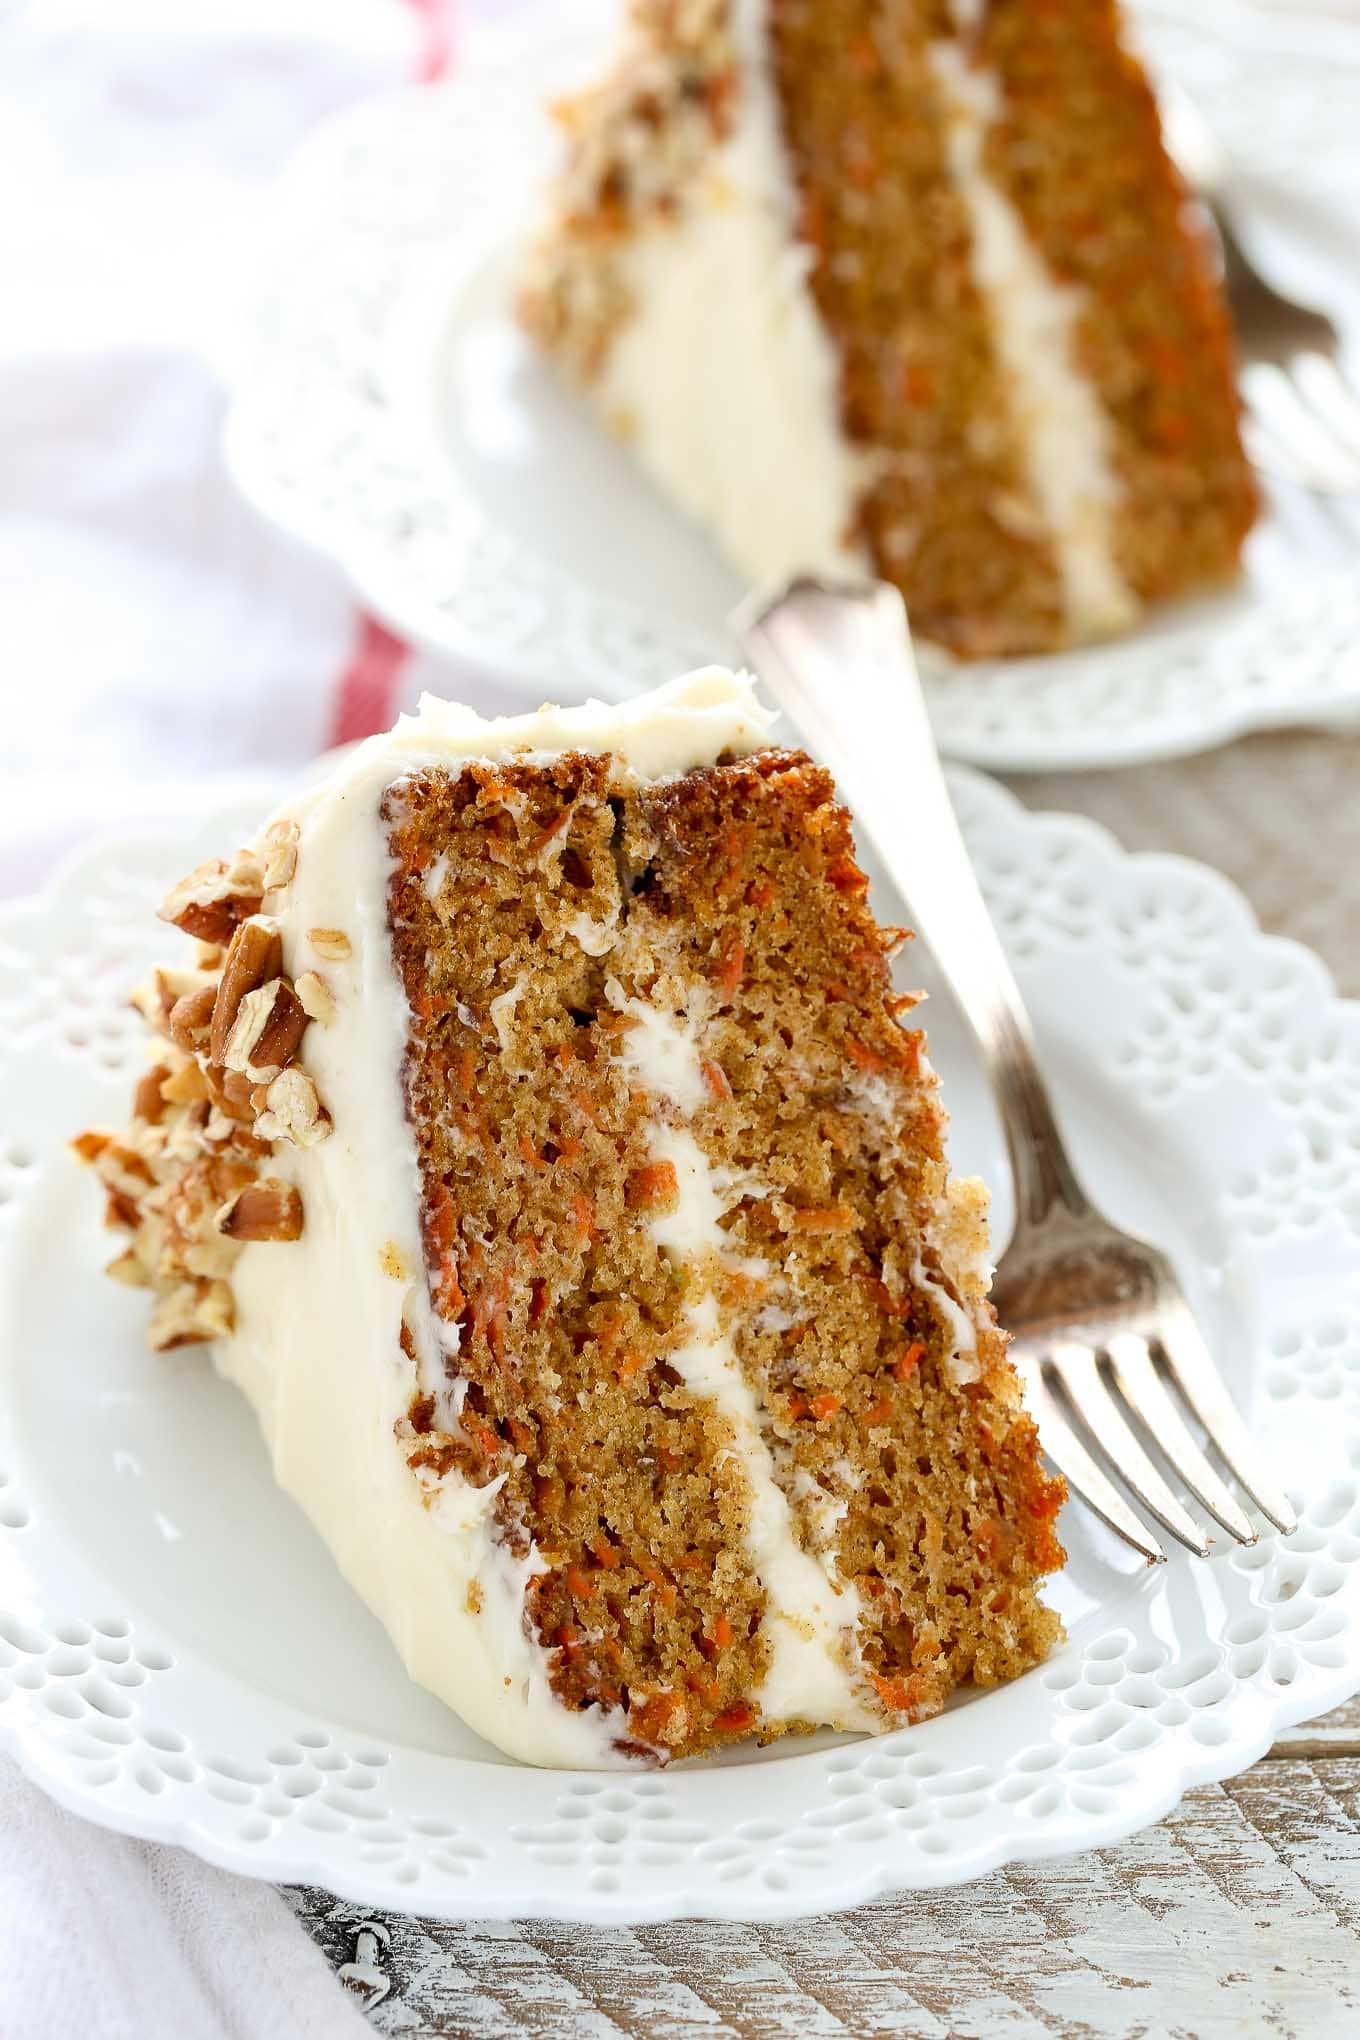 Homemade Carrot Cake Recipe From Scratch